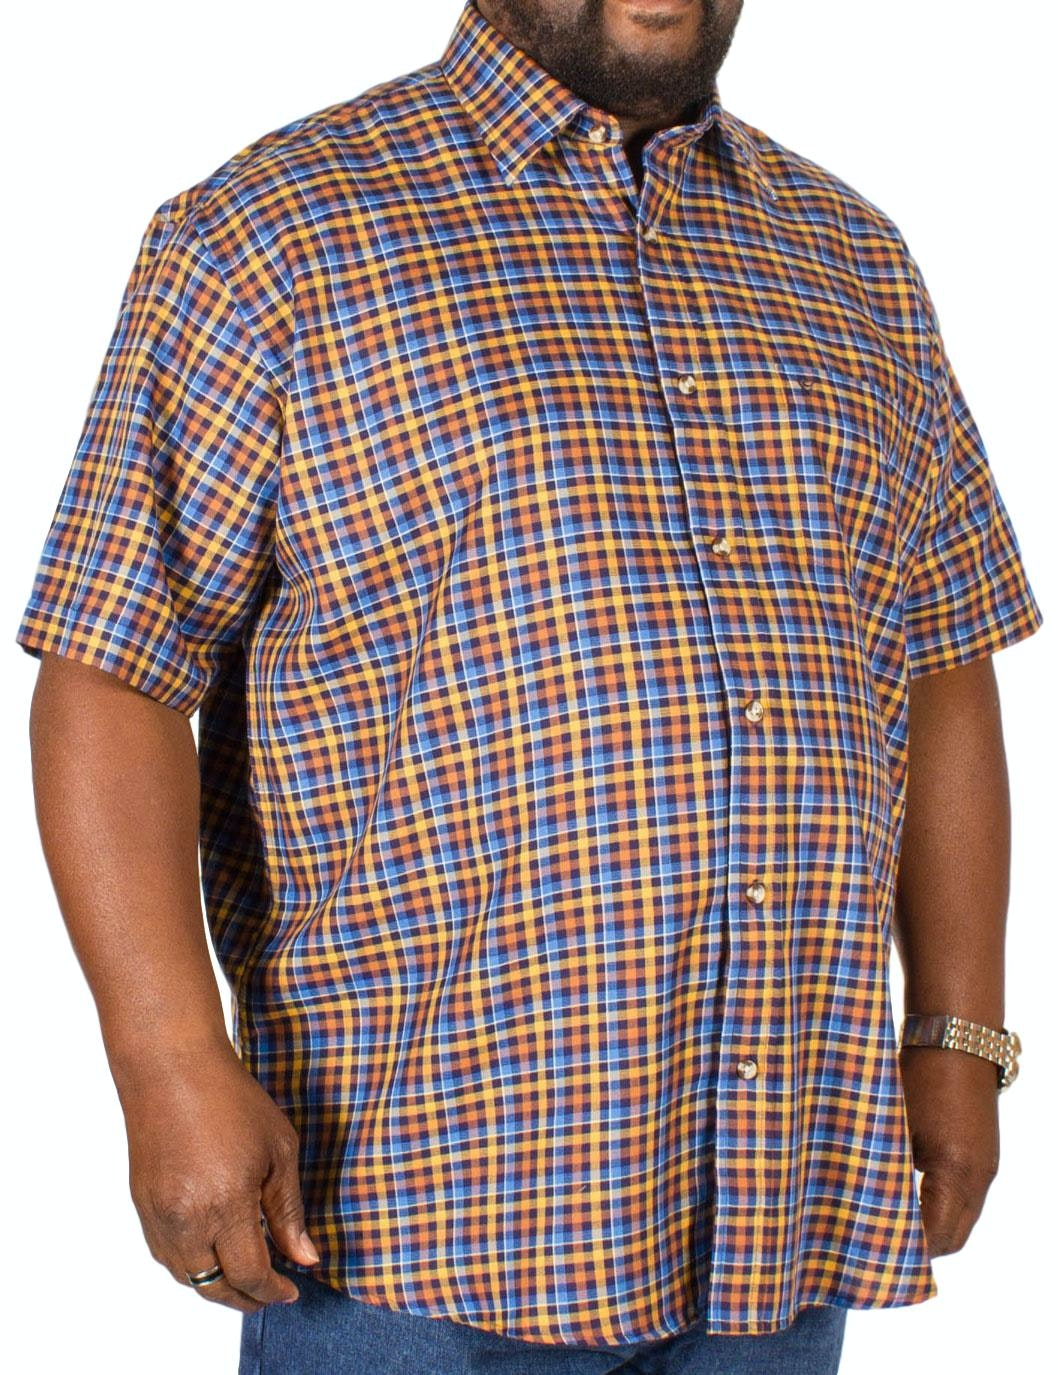 Cotton Valley Short Sleeve Twill Check Shirt Blue/Tan